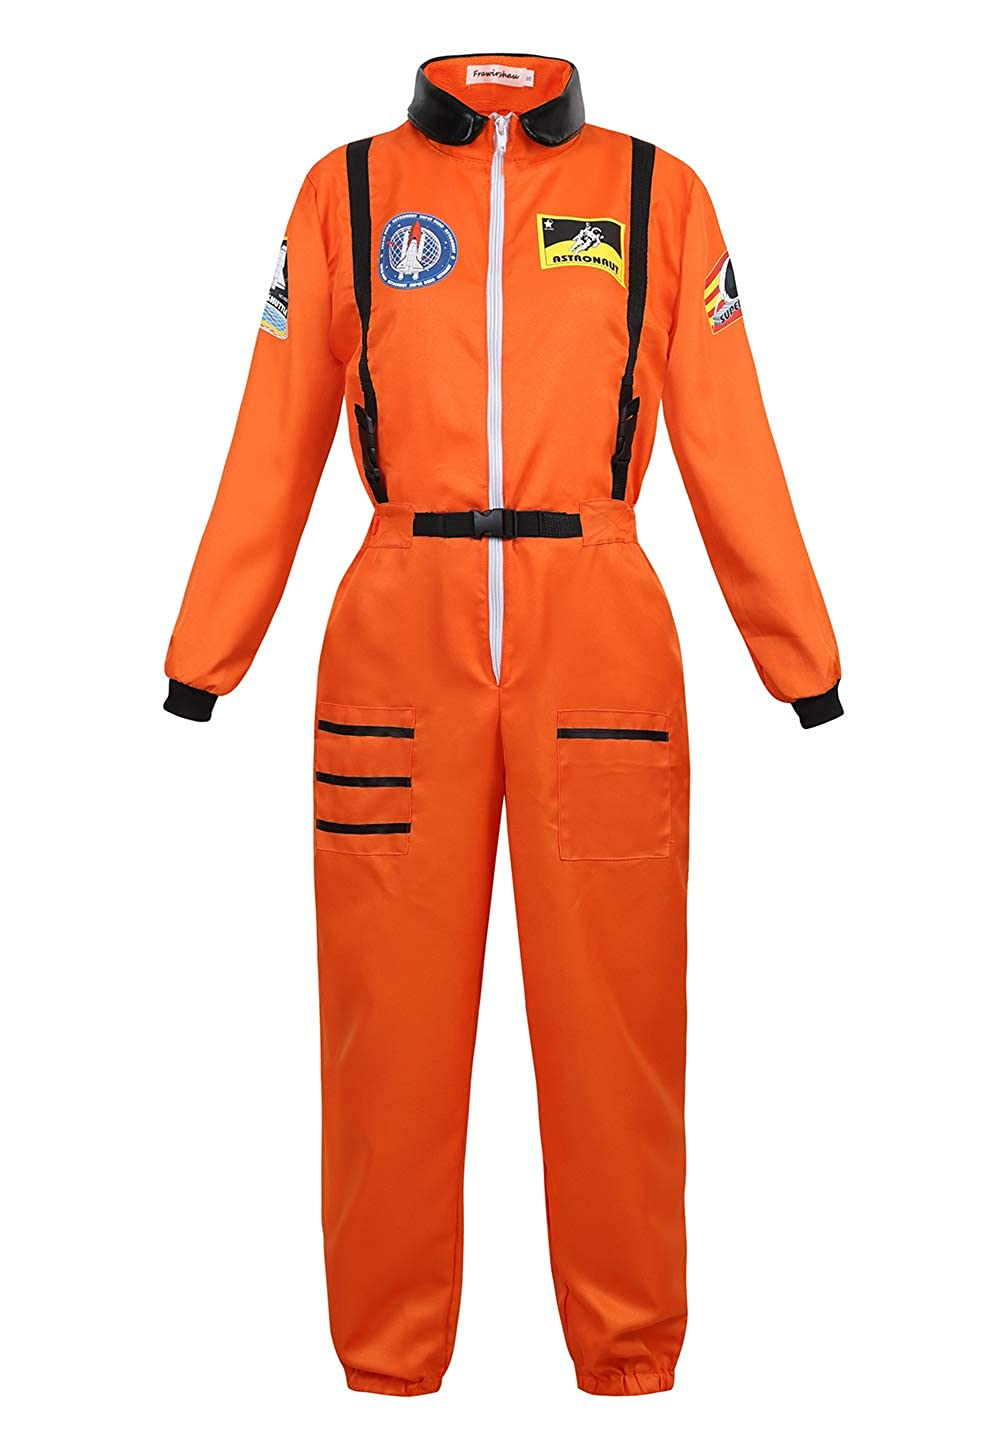 Astronaut Costume for Women